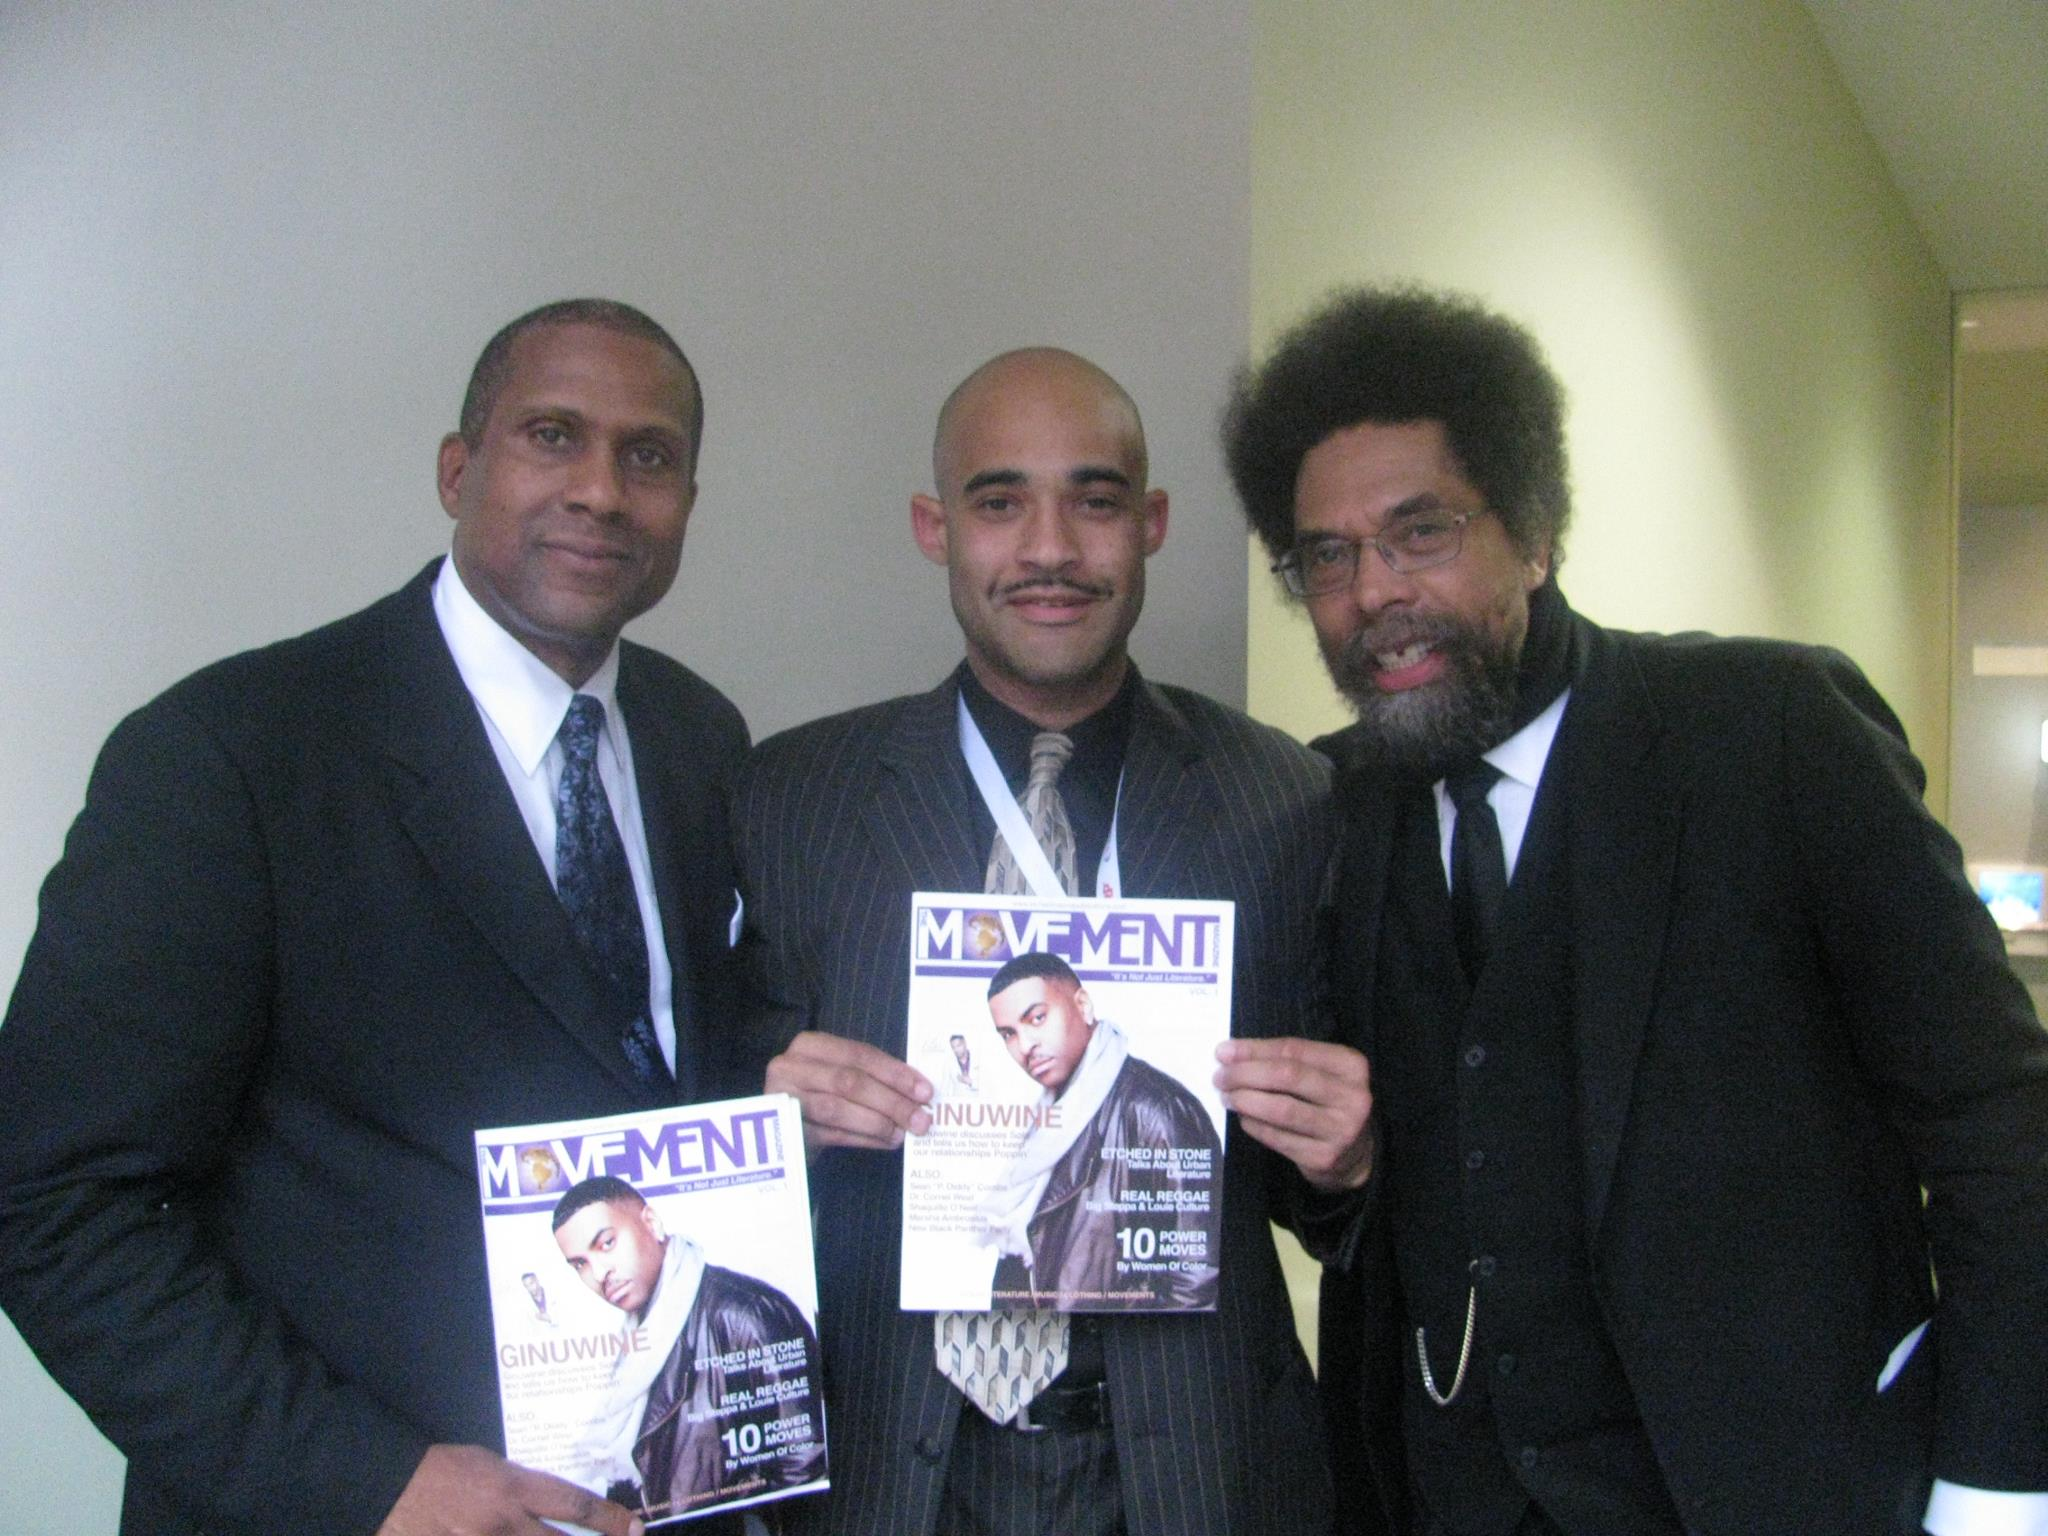 Tavis Smiley, Doshon & Dr. Cornell West